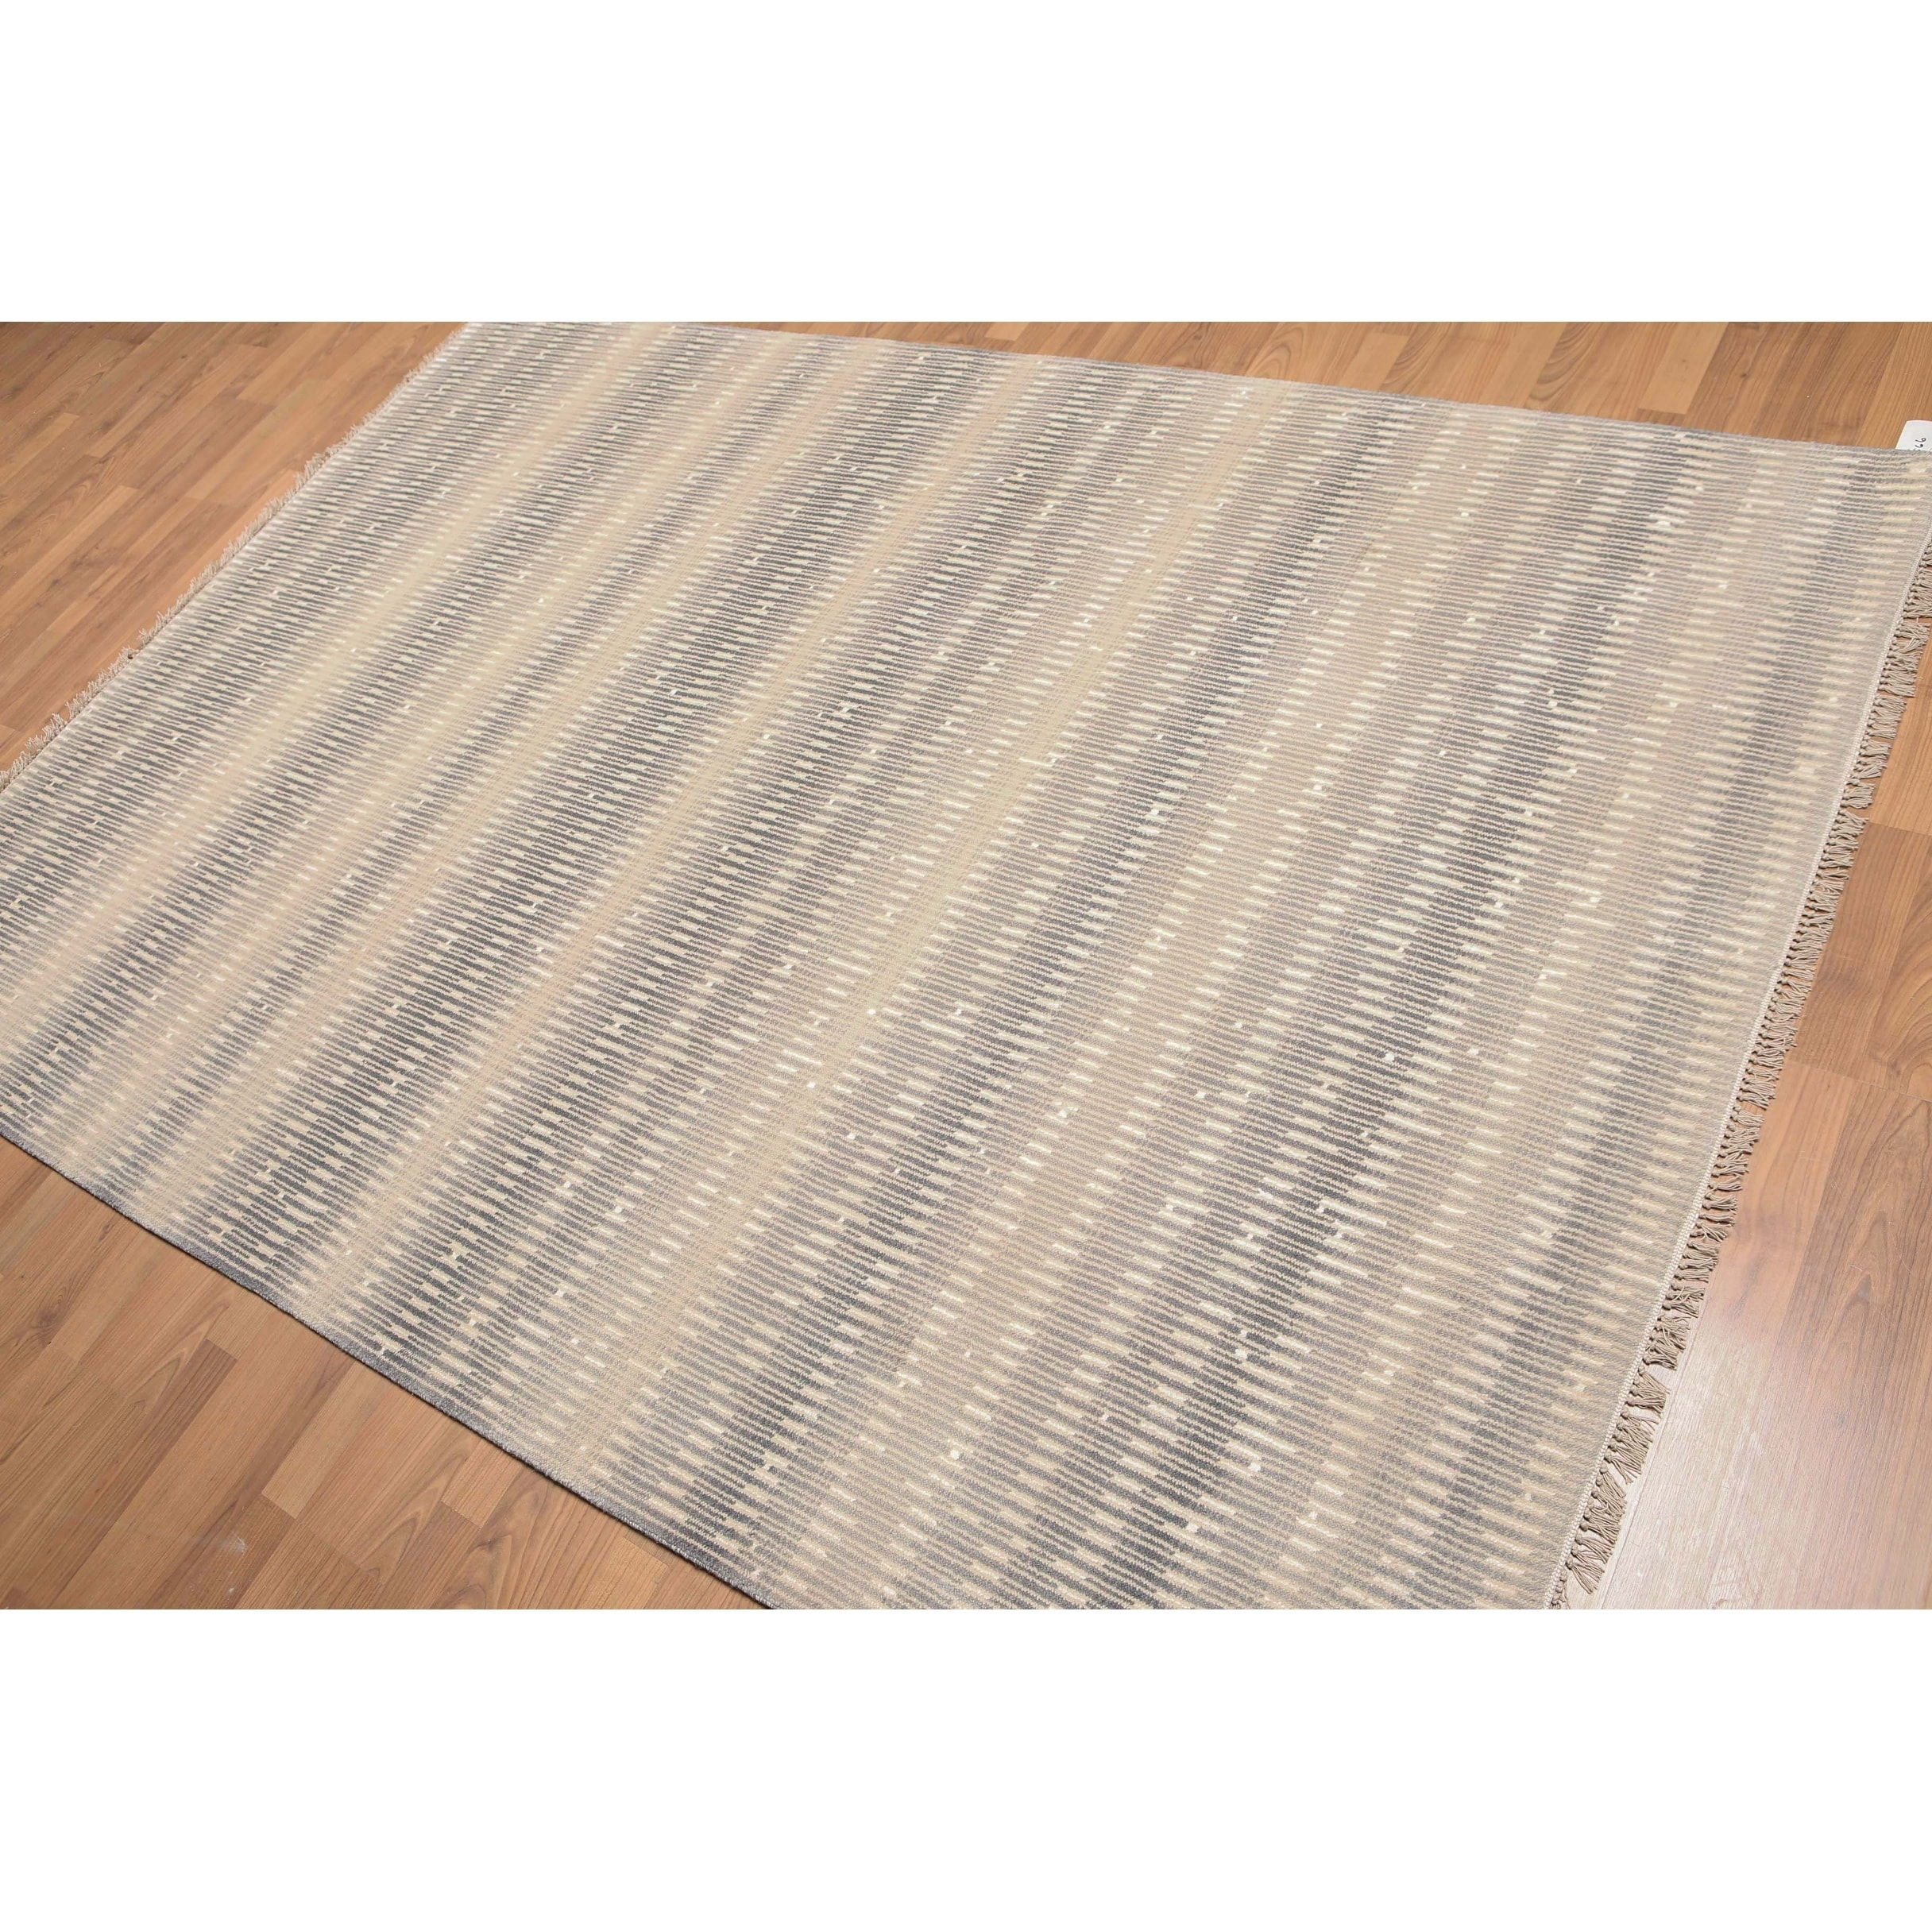 Industrial Glam Oriental Hand Knotted Area Rug - Multi